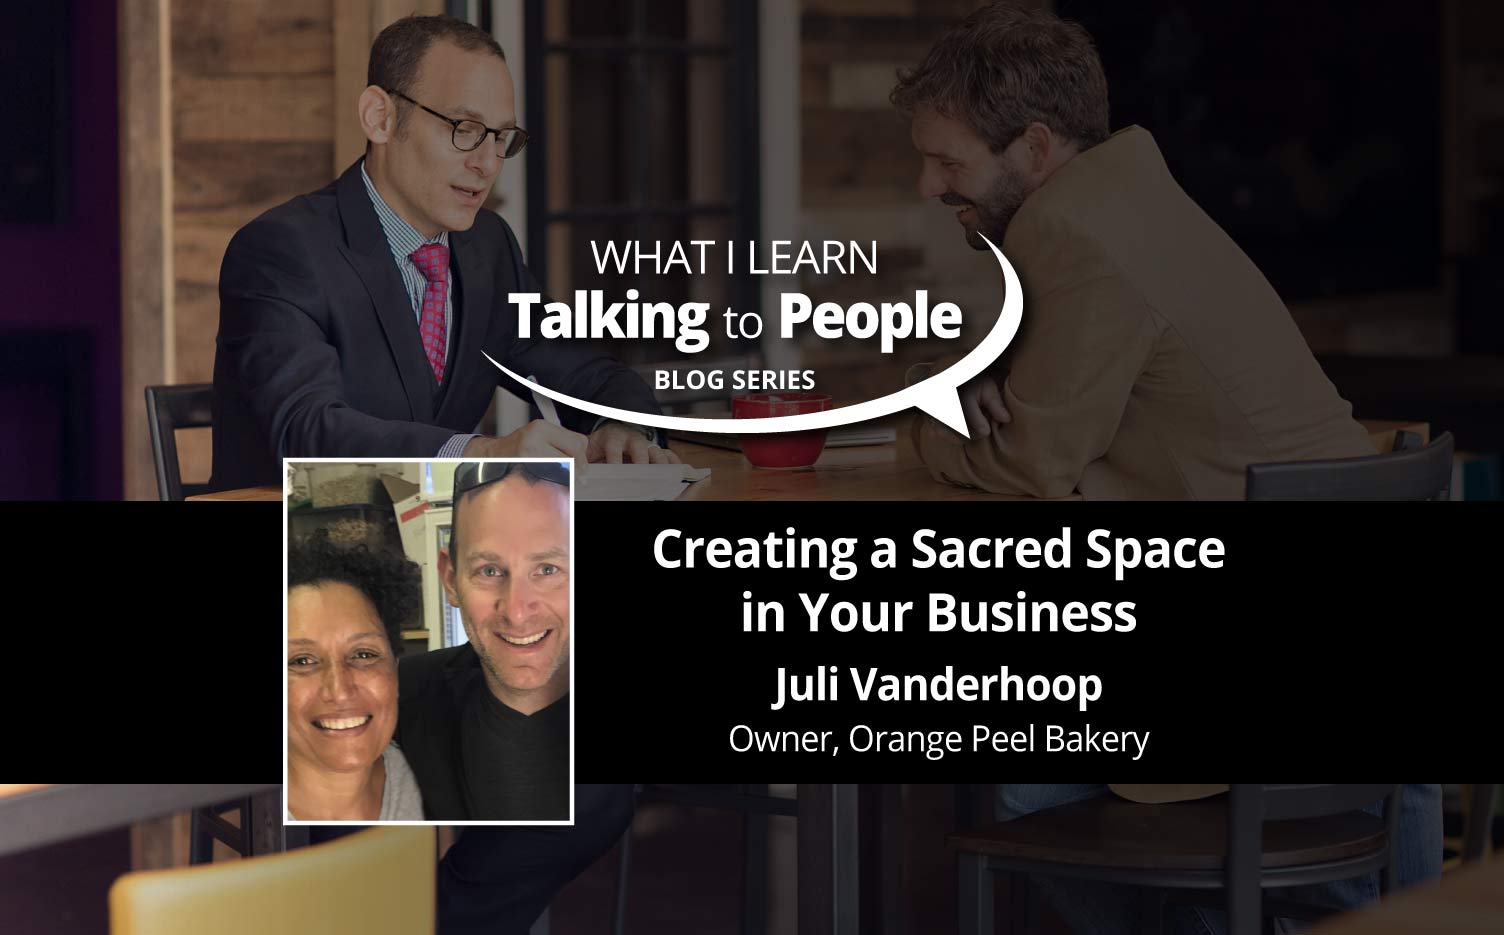 Jon Dwoskin Business Blog: Creating a Sacred Space in Your Business